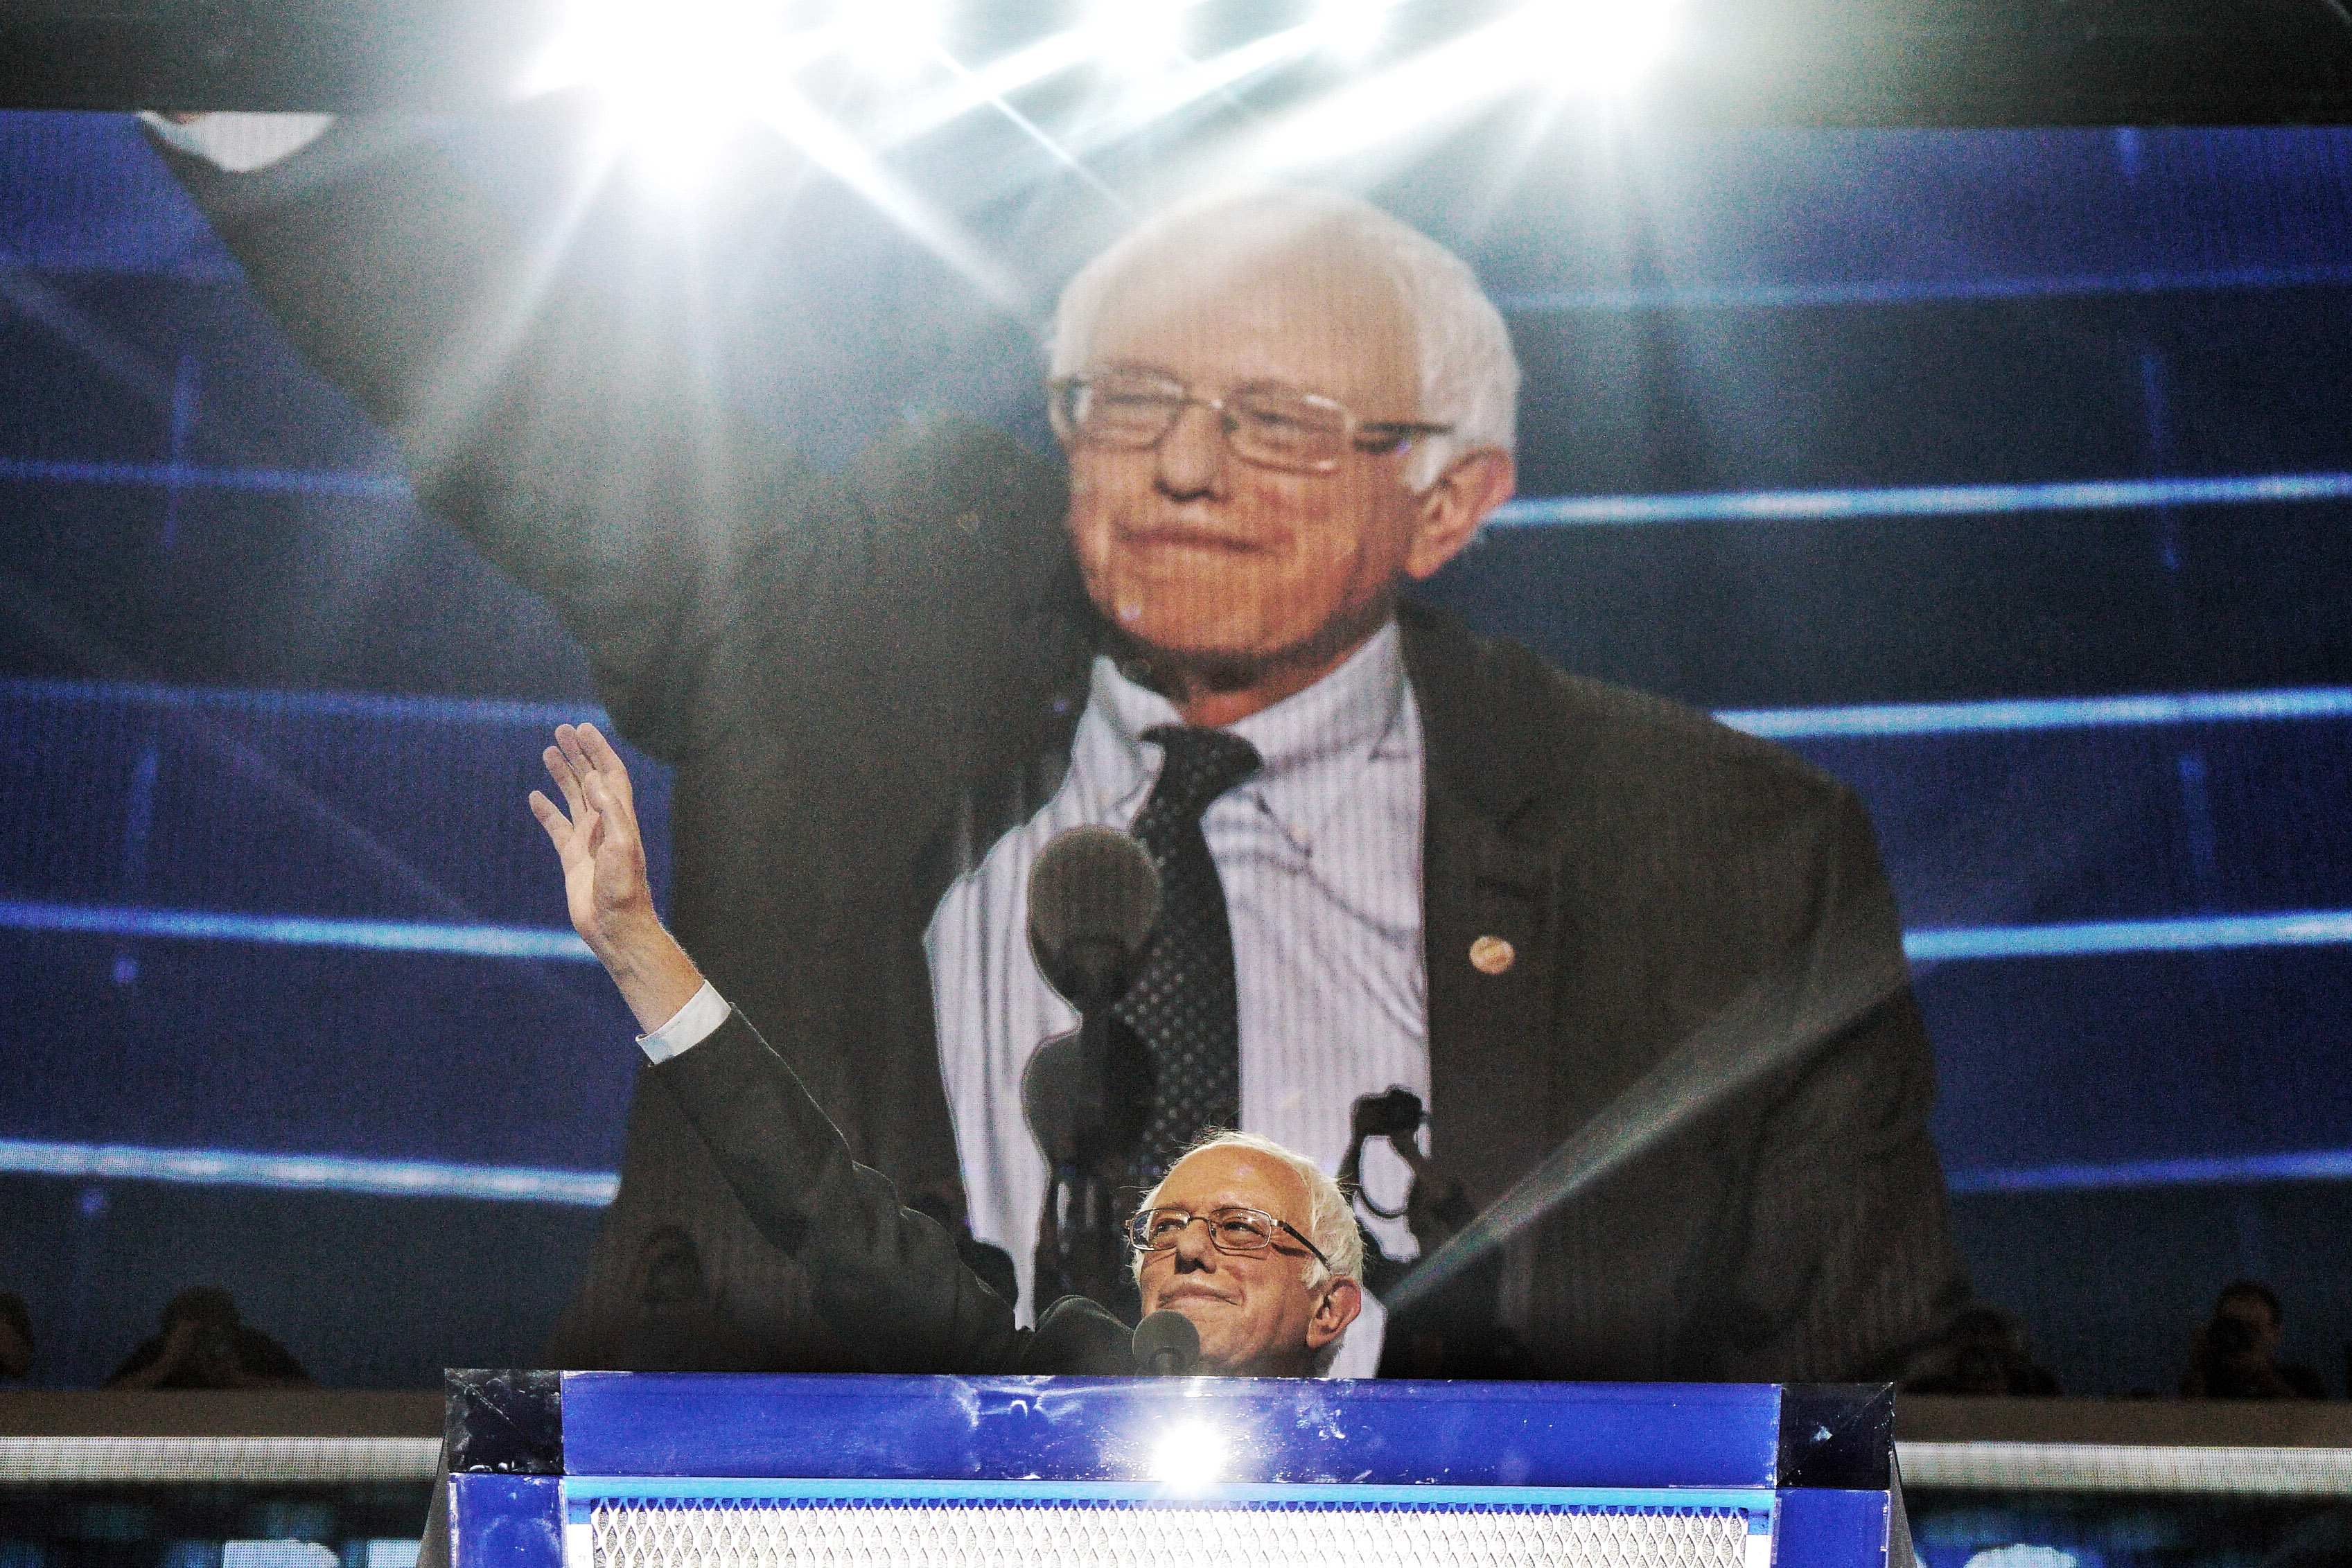 Vermont Sen. Bernie Sanders speaks during the Democratic National Convention on July 25, 2016 in Philadelphia.